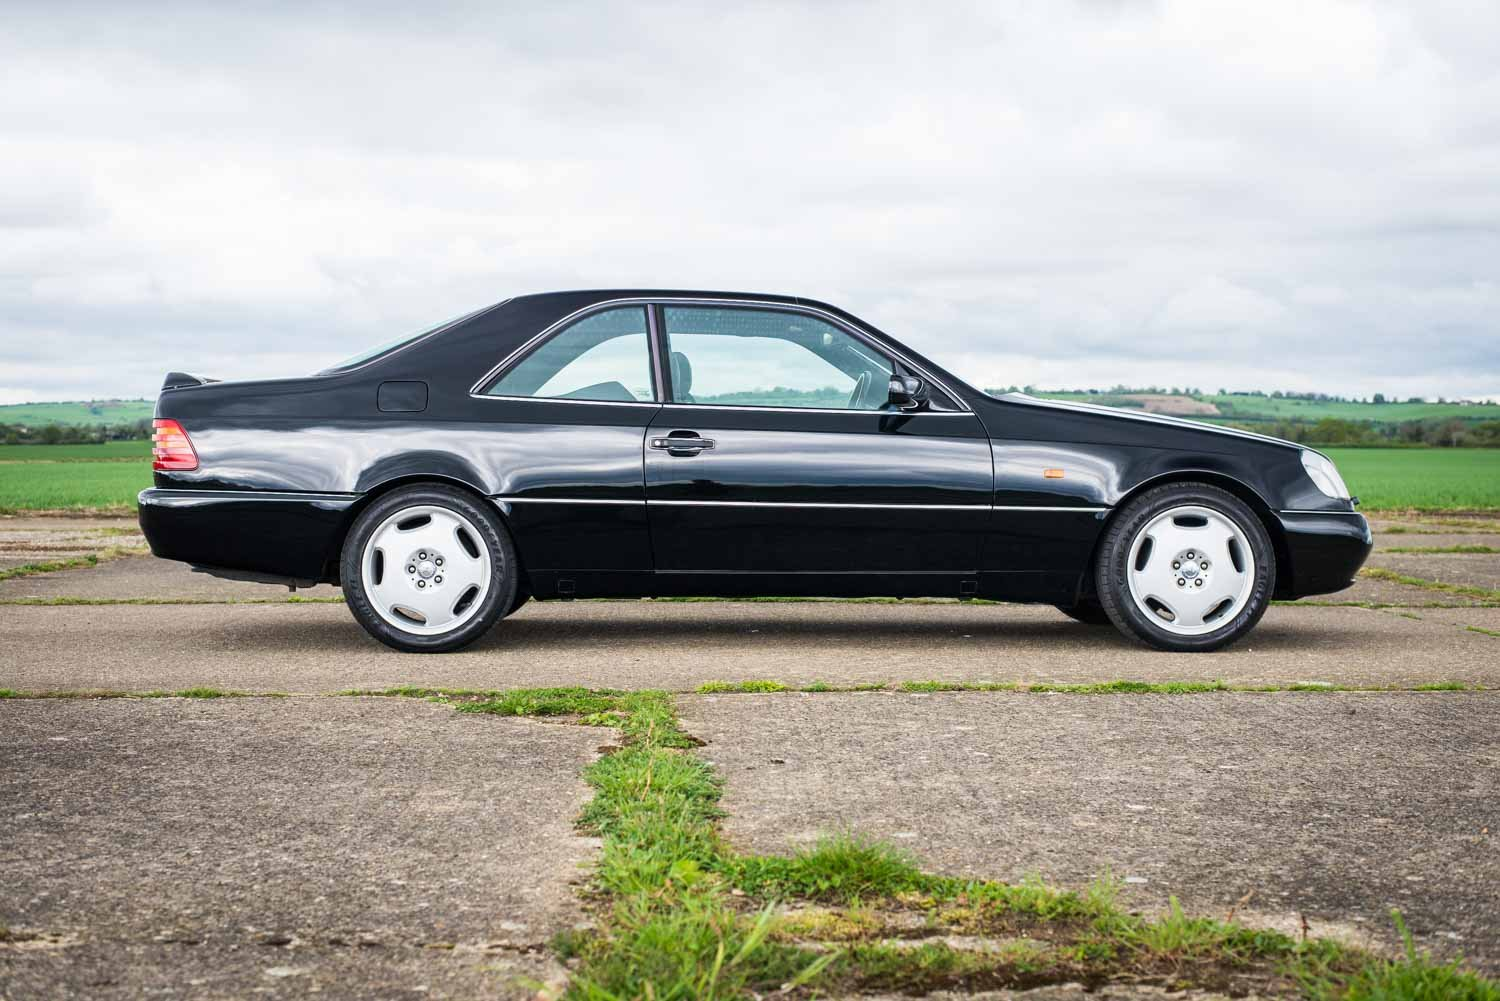 1995 Mercedes-Benz W140 S500 Coupe - 95K - 3 Owners - Lorinser SOLD (picture 3 of 6)